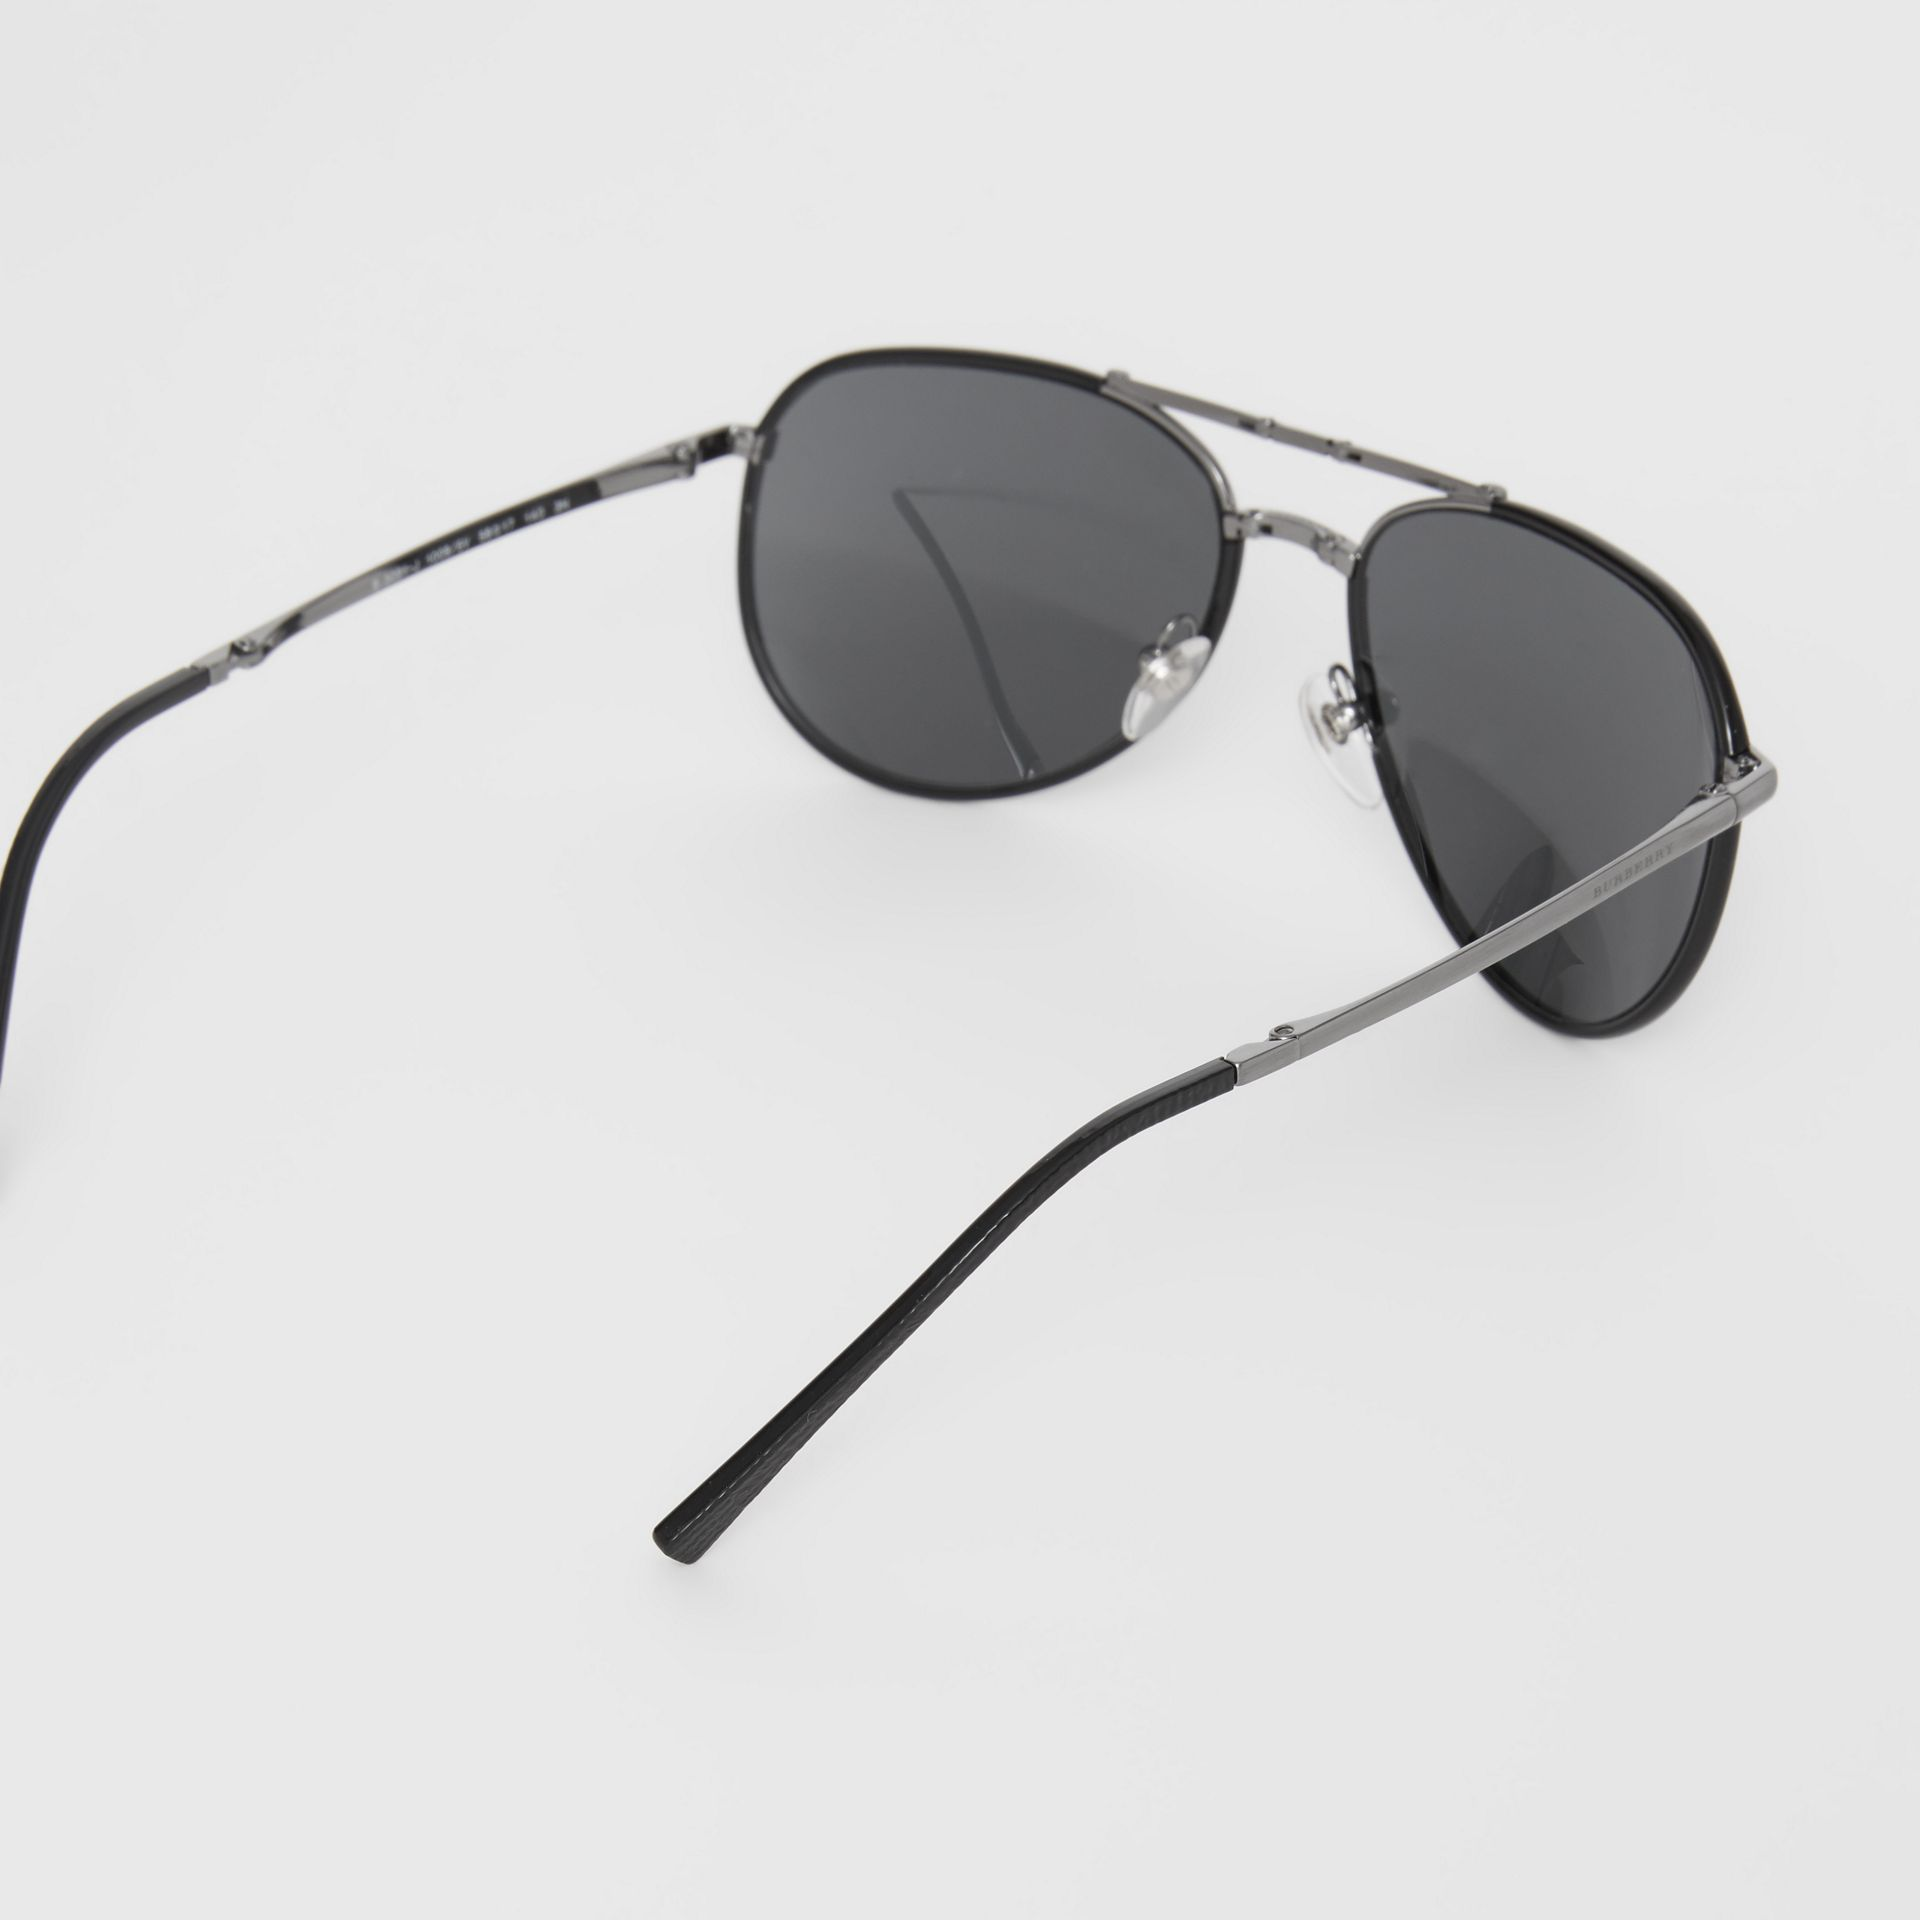 Folding Pilot Sunglasses in Black - Men | Burberry Australia - gallery image 4